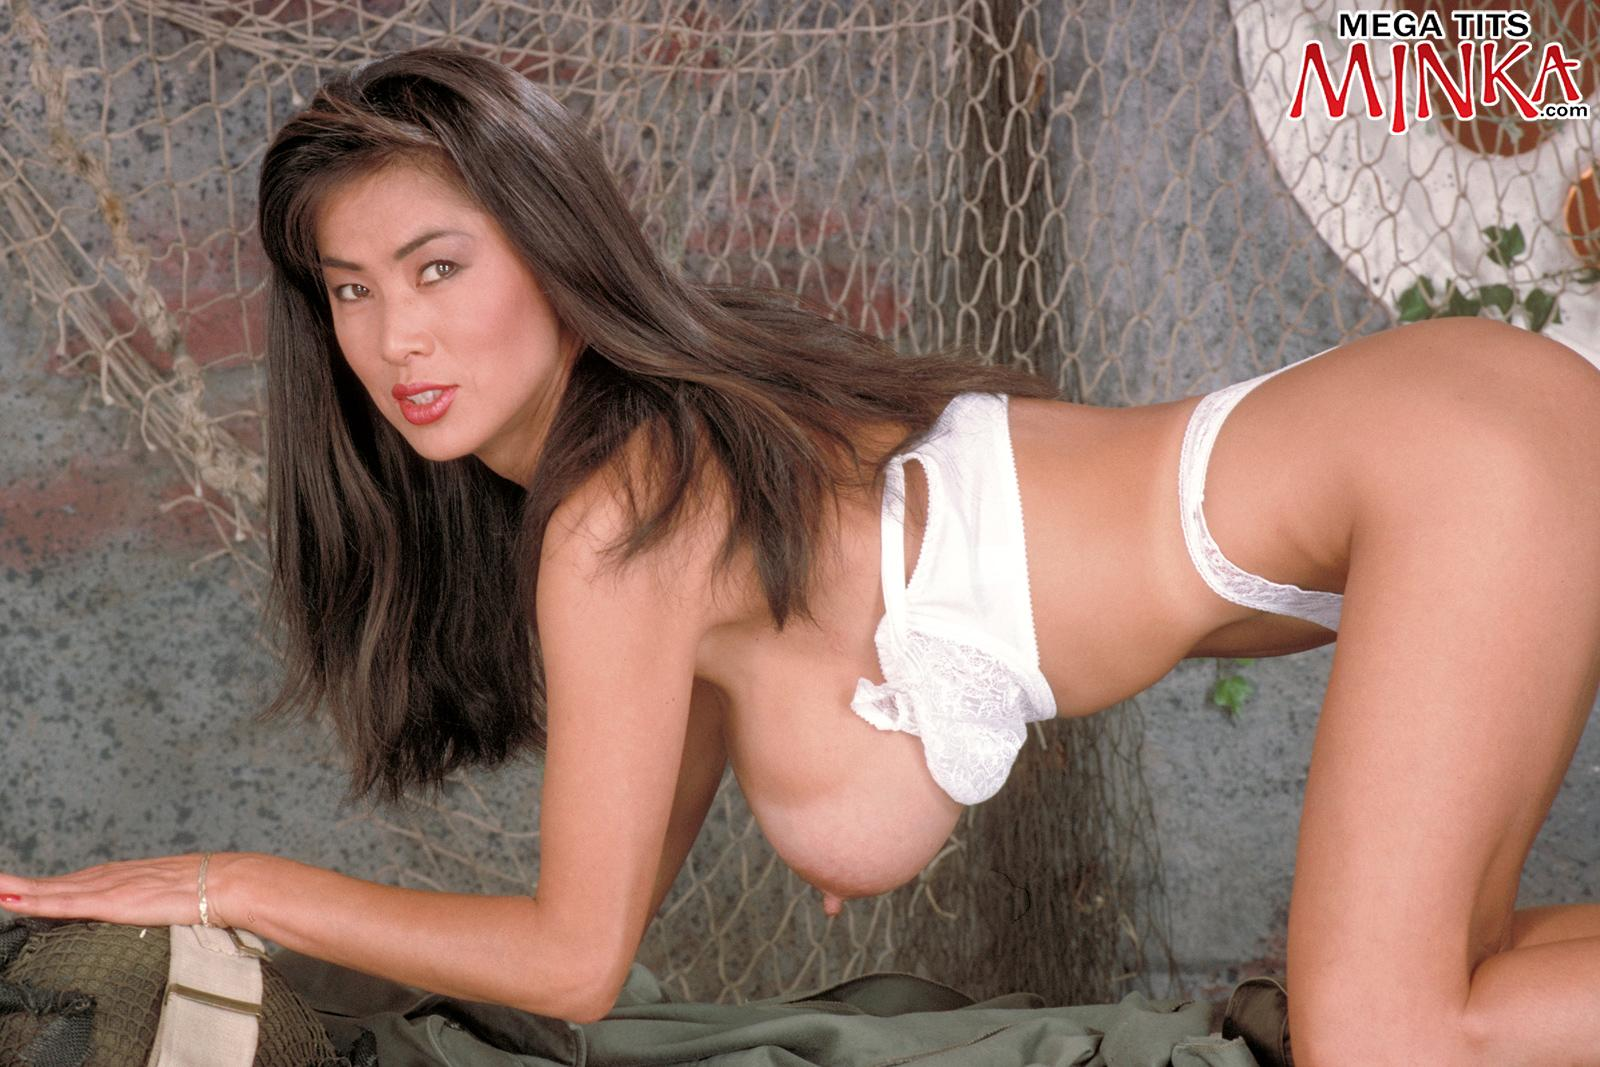 Oriental solo model Minka bares her gigantic tits from her bra army fatigues